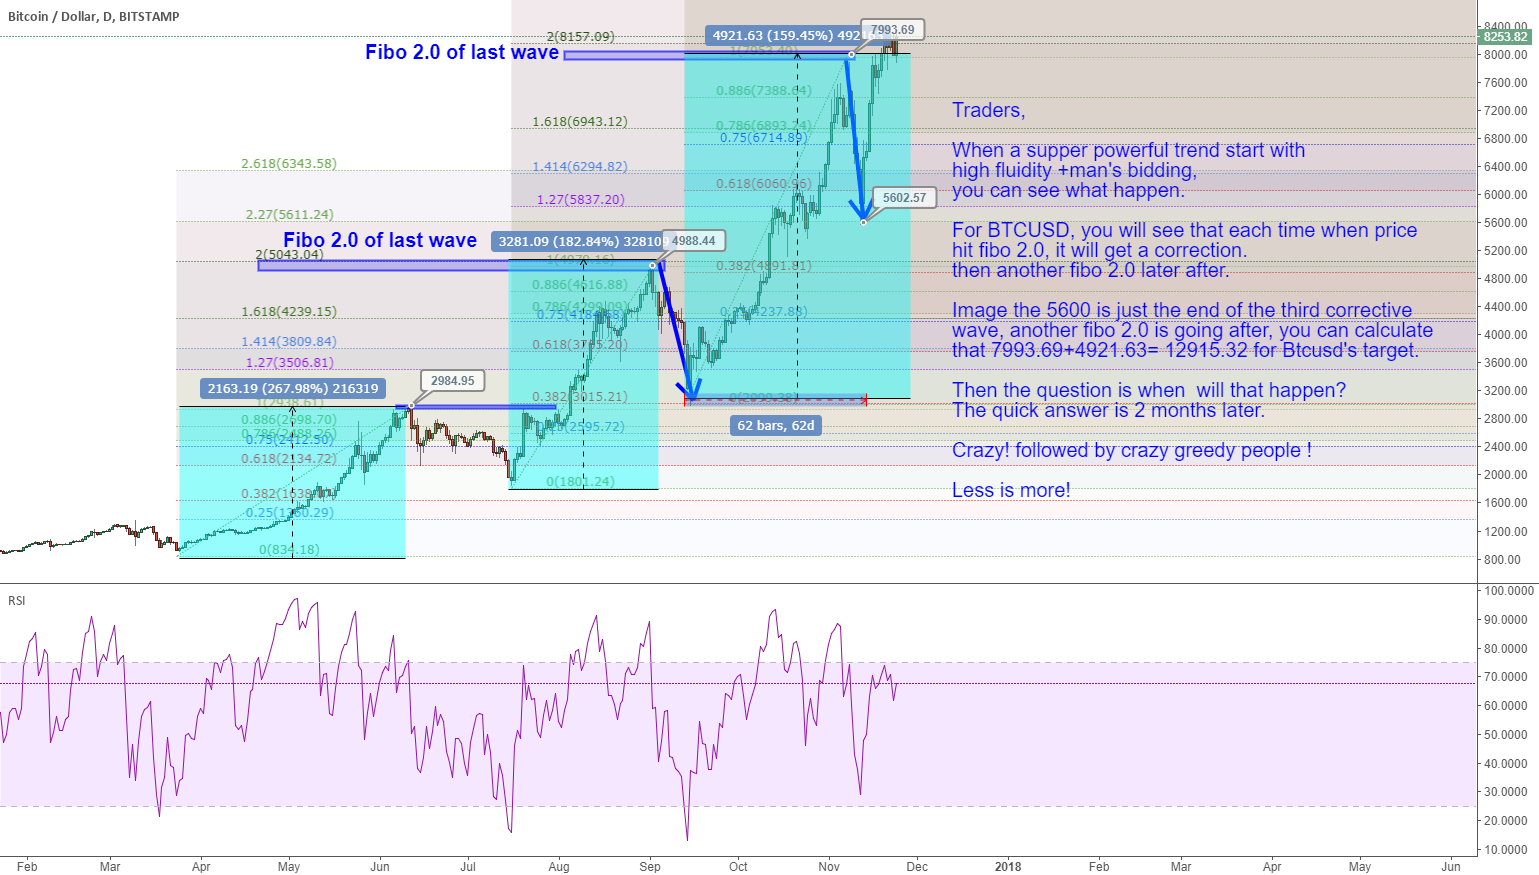 12915.32 for Btcusd's 2 mth target